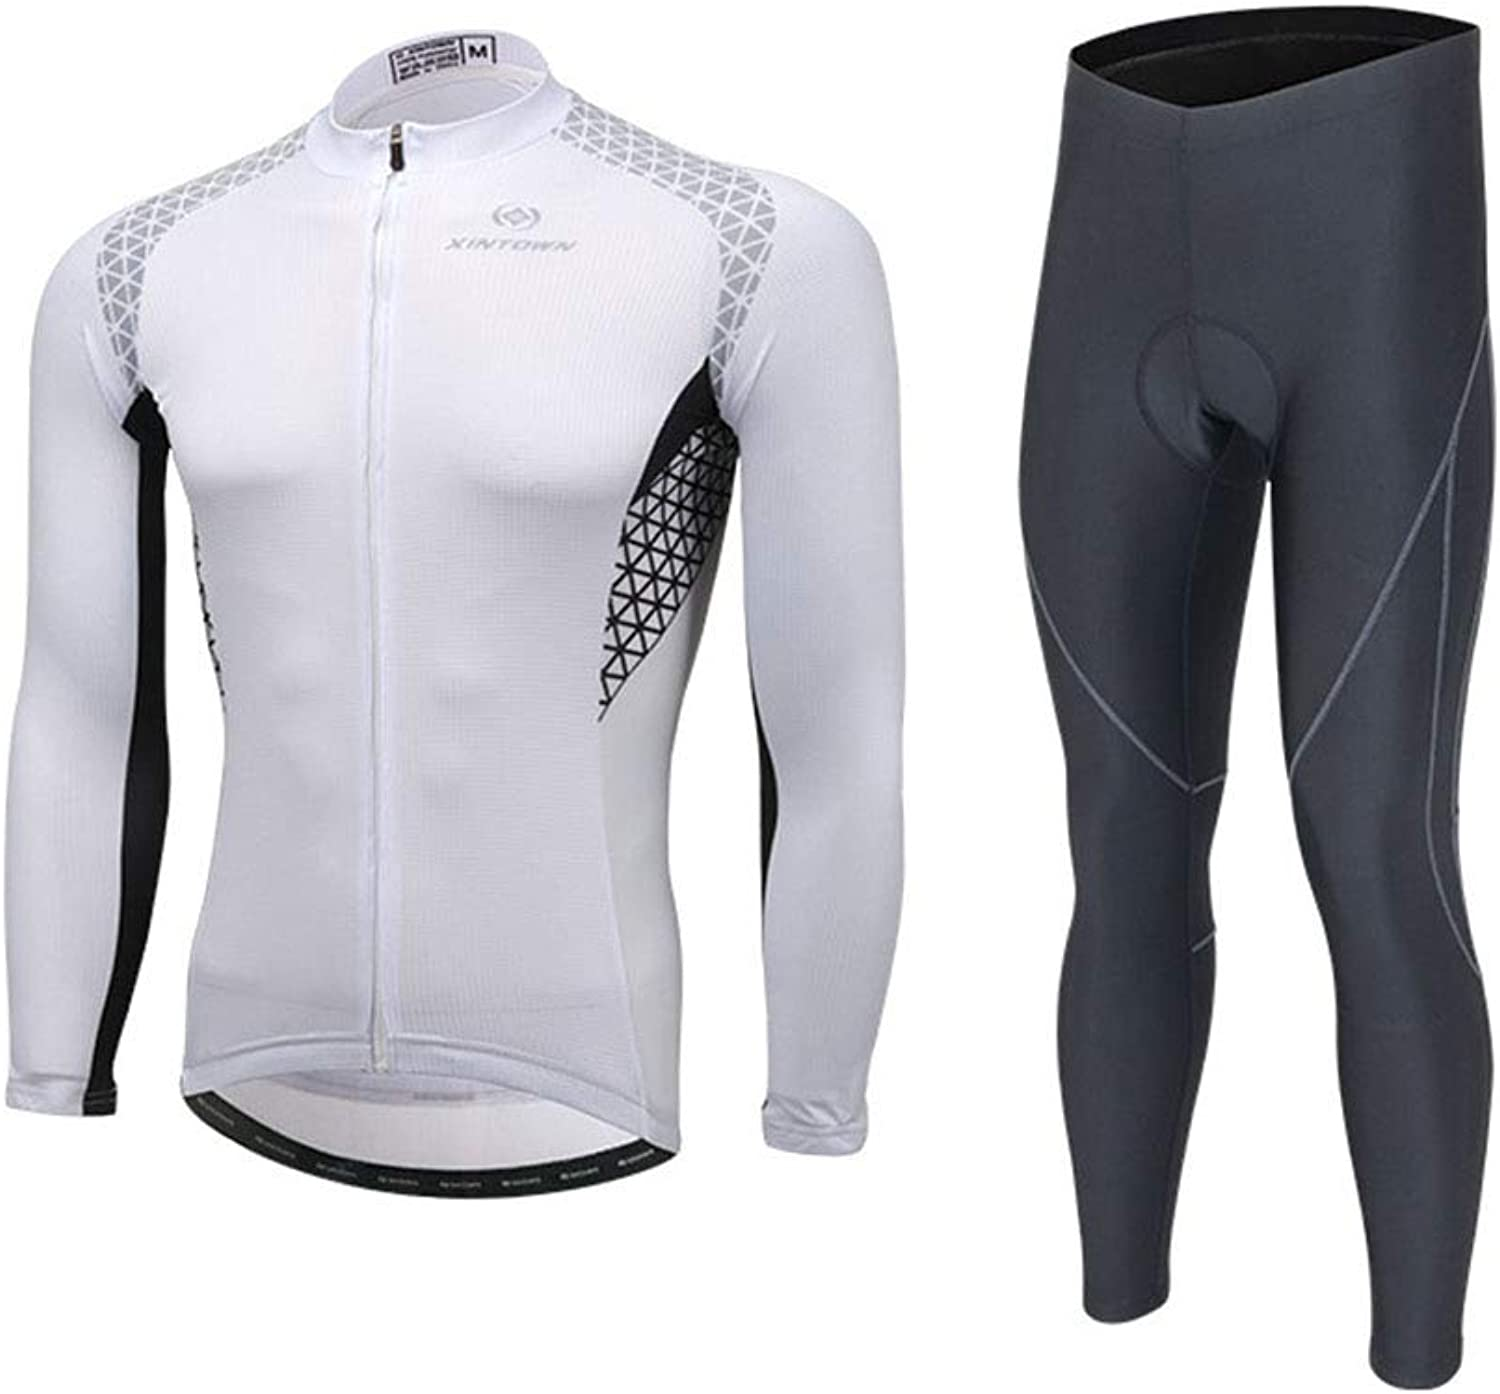 Zmcong Cycling sling long sleeve suit bicycle clothing, moisture wicking and quick-drying pants,Mens Cycling Clothing Set